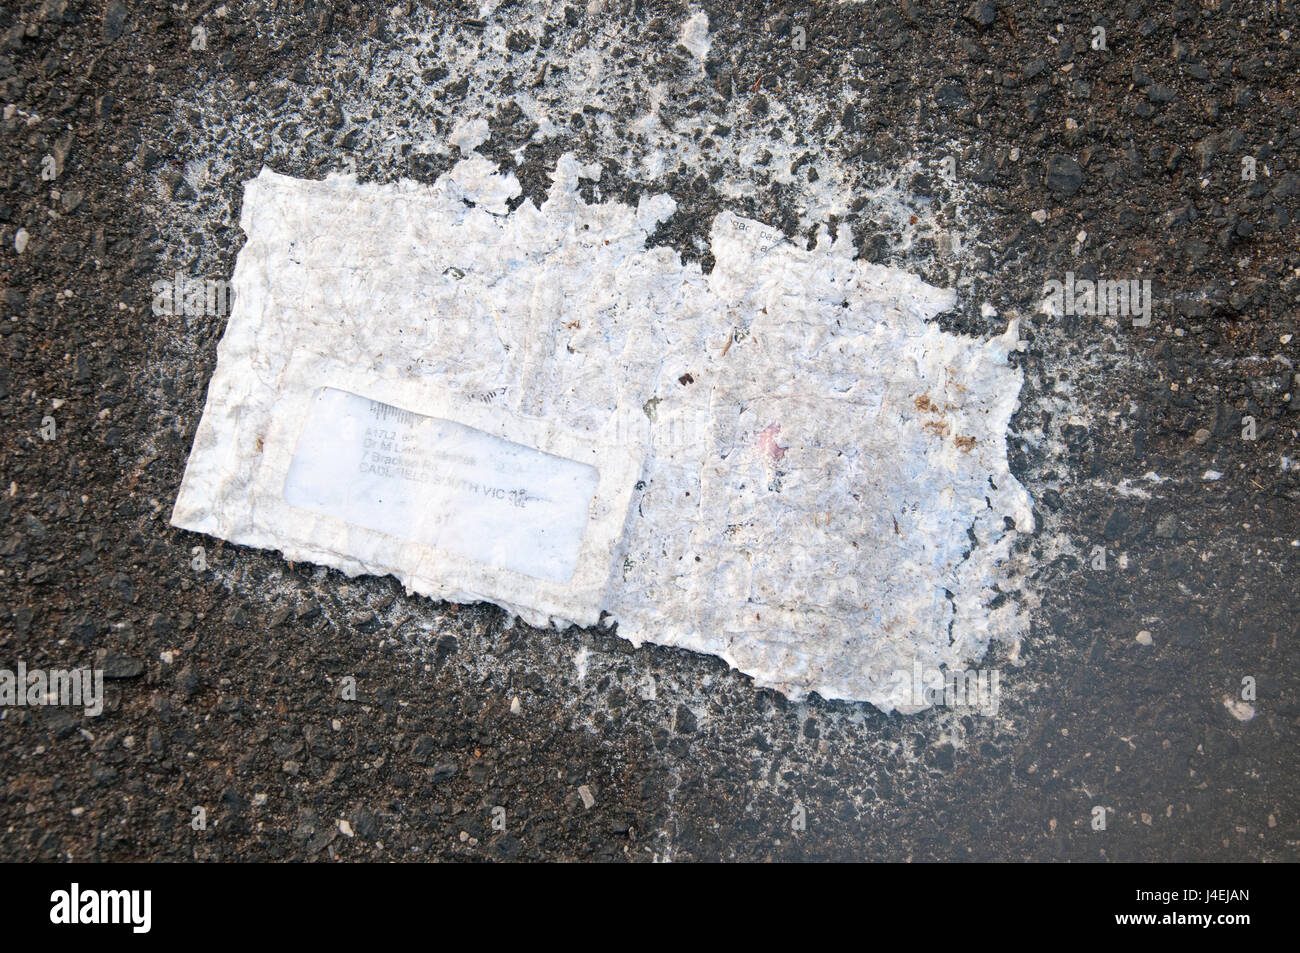 Scarcely recognisable as such, an unopened letter lies discarded on a suburban road - Stock Image